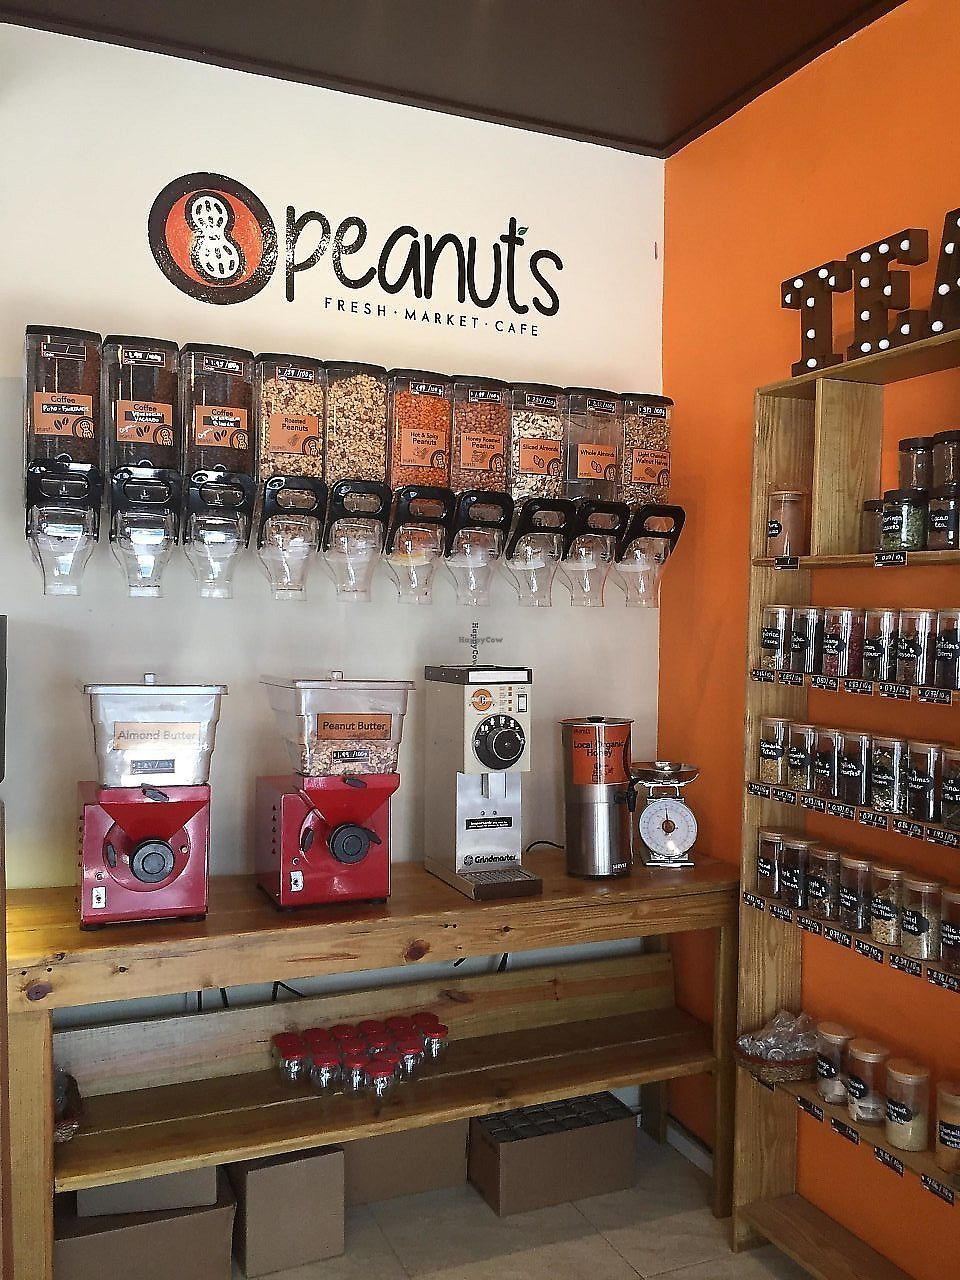 """Photo of Peanuts Fresh Market Cafe  by <a href=""""/members/profile/Eefie"""">Eefie</a> <br/>All kinds of nuts, peanut & almond  butter <br/> December 27, 2017  - <a href='/contact/abuse/image/107619/339799'>Report</a>"""